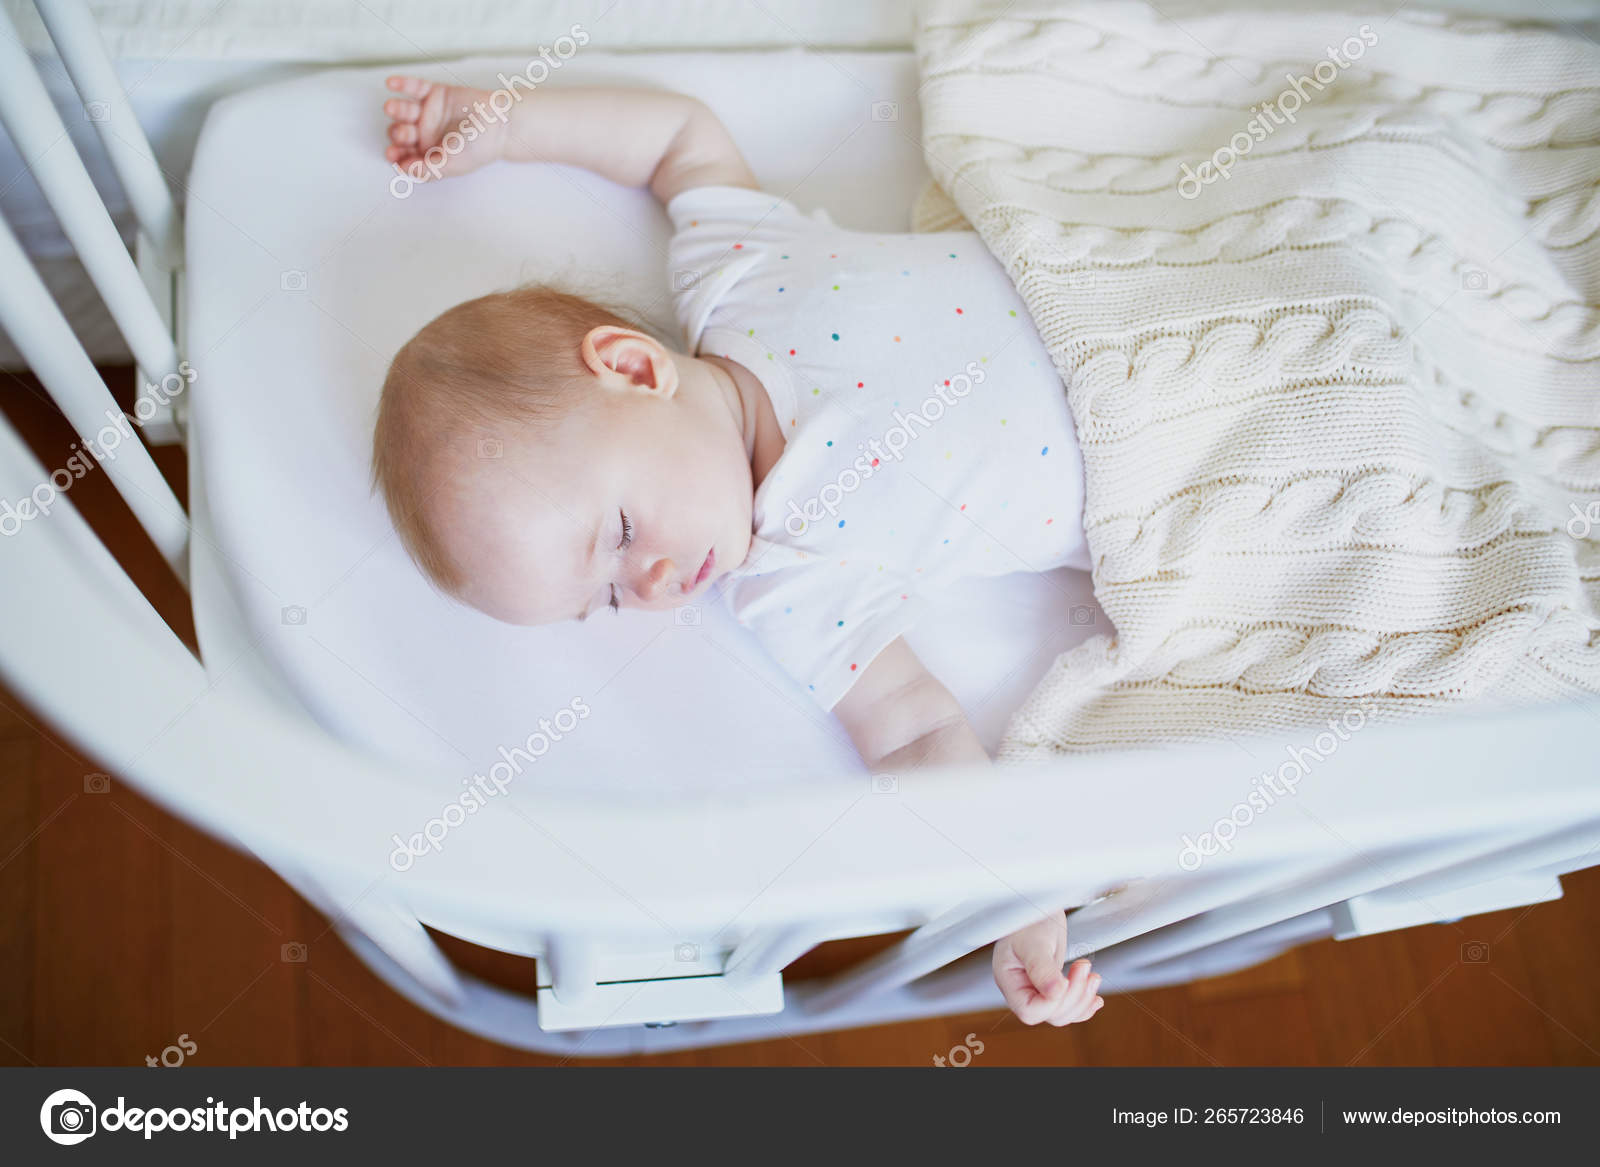 Baby Sleeping In Co Sleeper Crib Attached To Parents Bed Stock Photo C Encrier 265723846